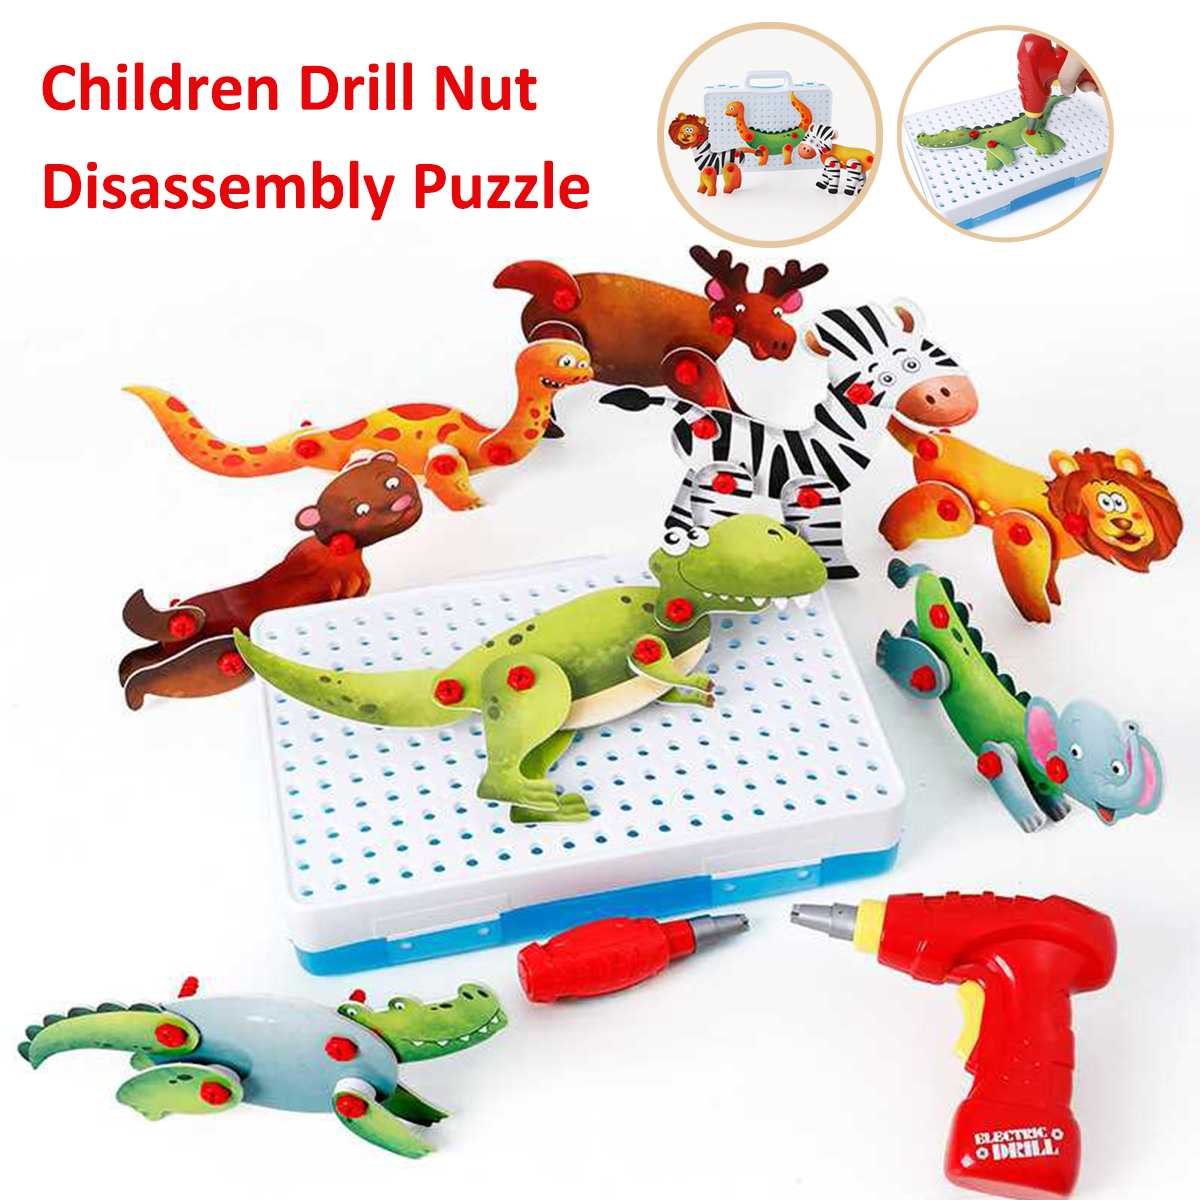 Children Drill Nut Disassembly Match Tool Kid Screwdriver Electric Drill Funny Toy Puzzle Assembled Toys Blocks Sets Kids Gift цена